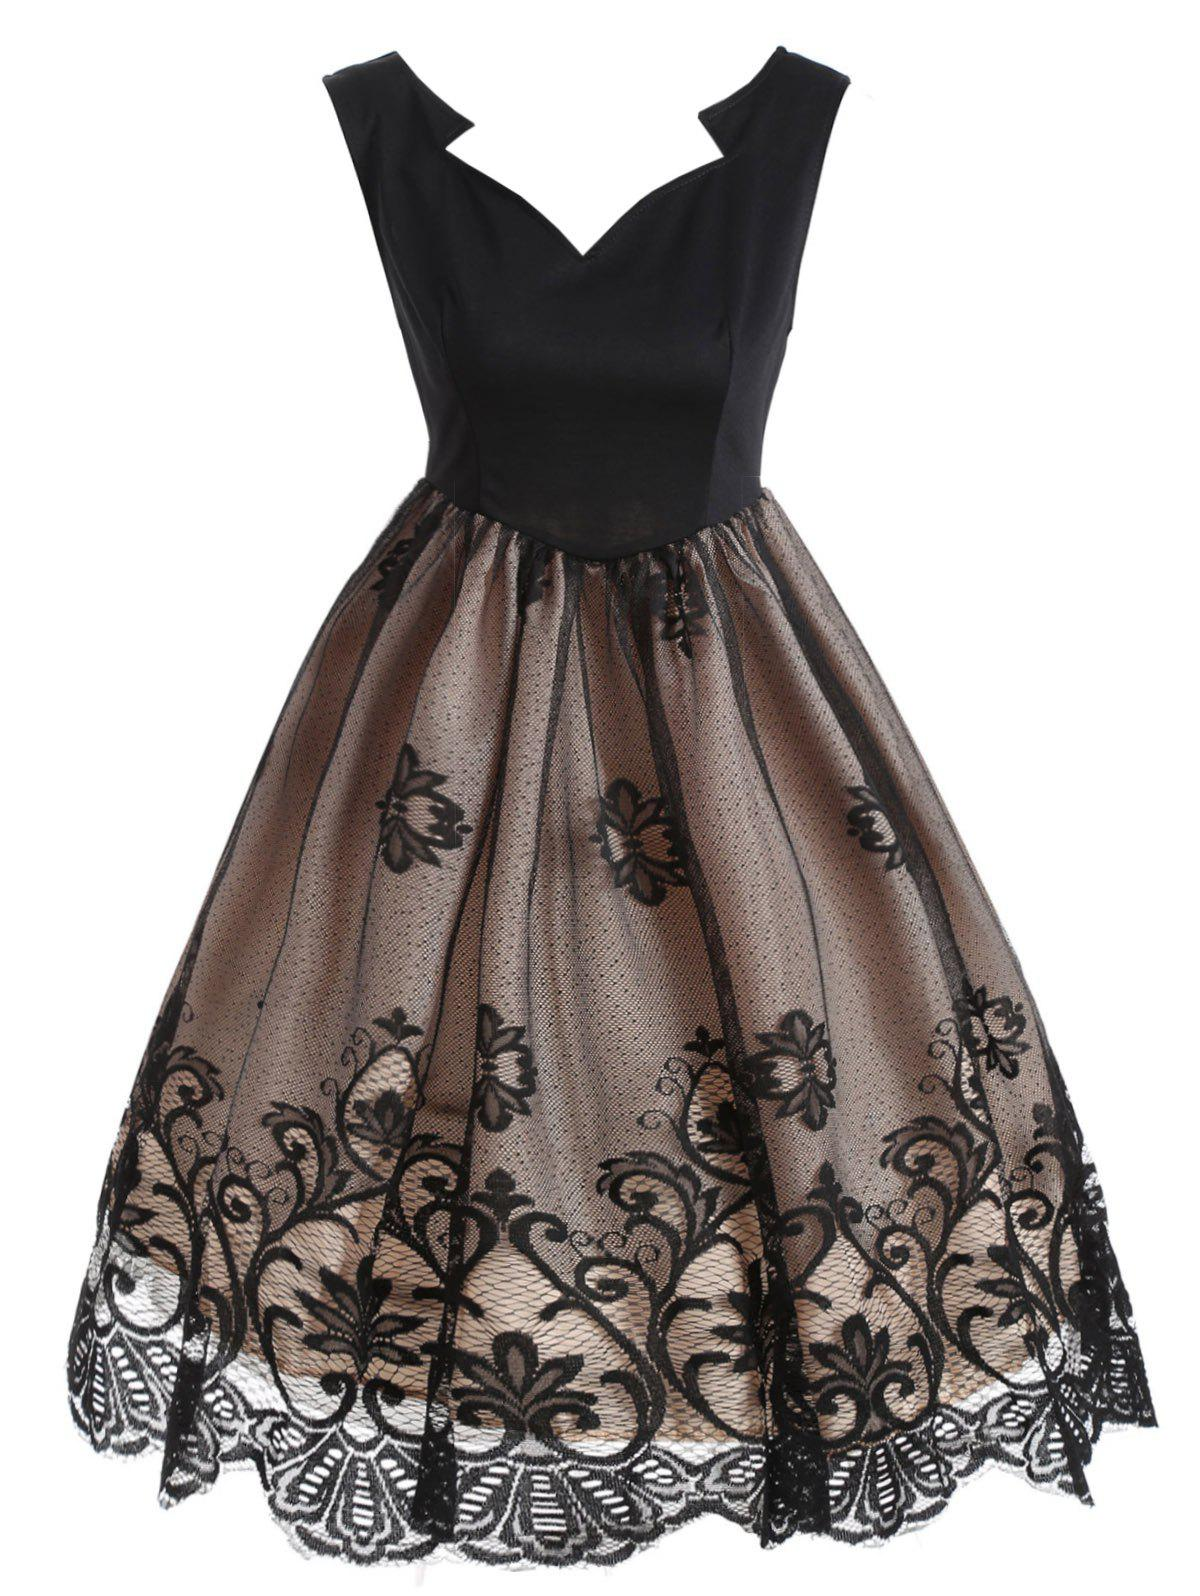 Floral Lace Scalloped Vintage Dress - KHAKI S